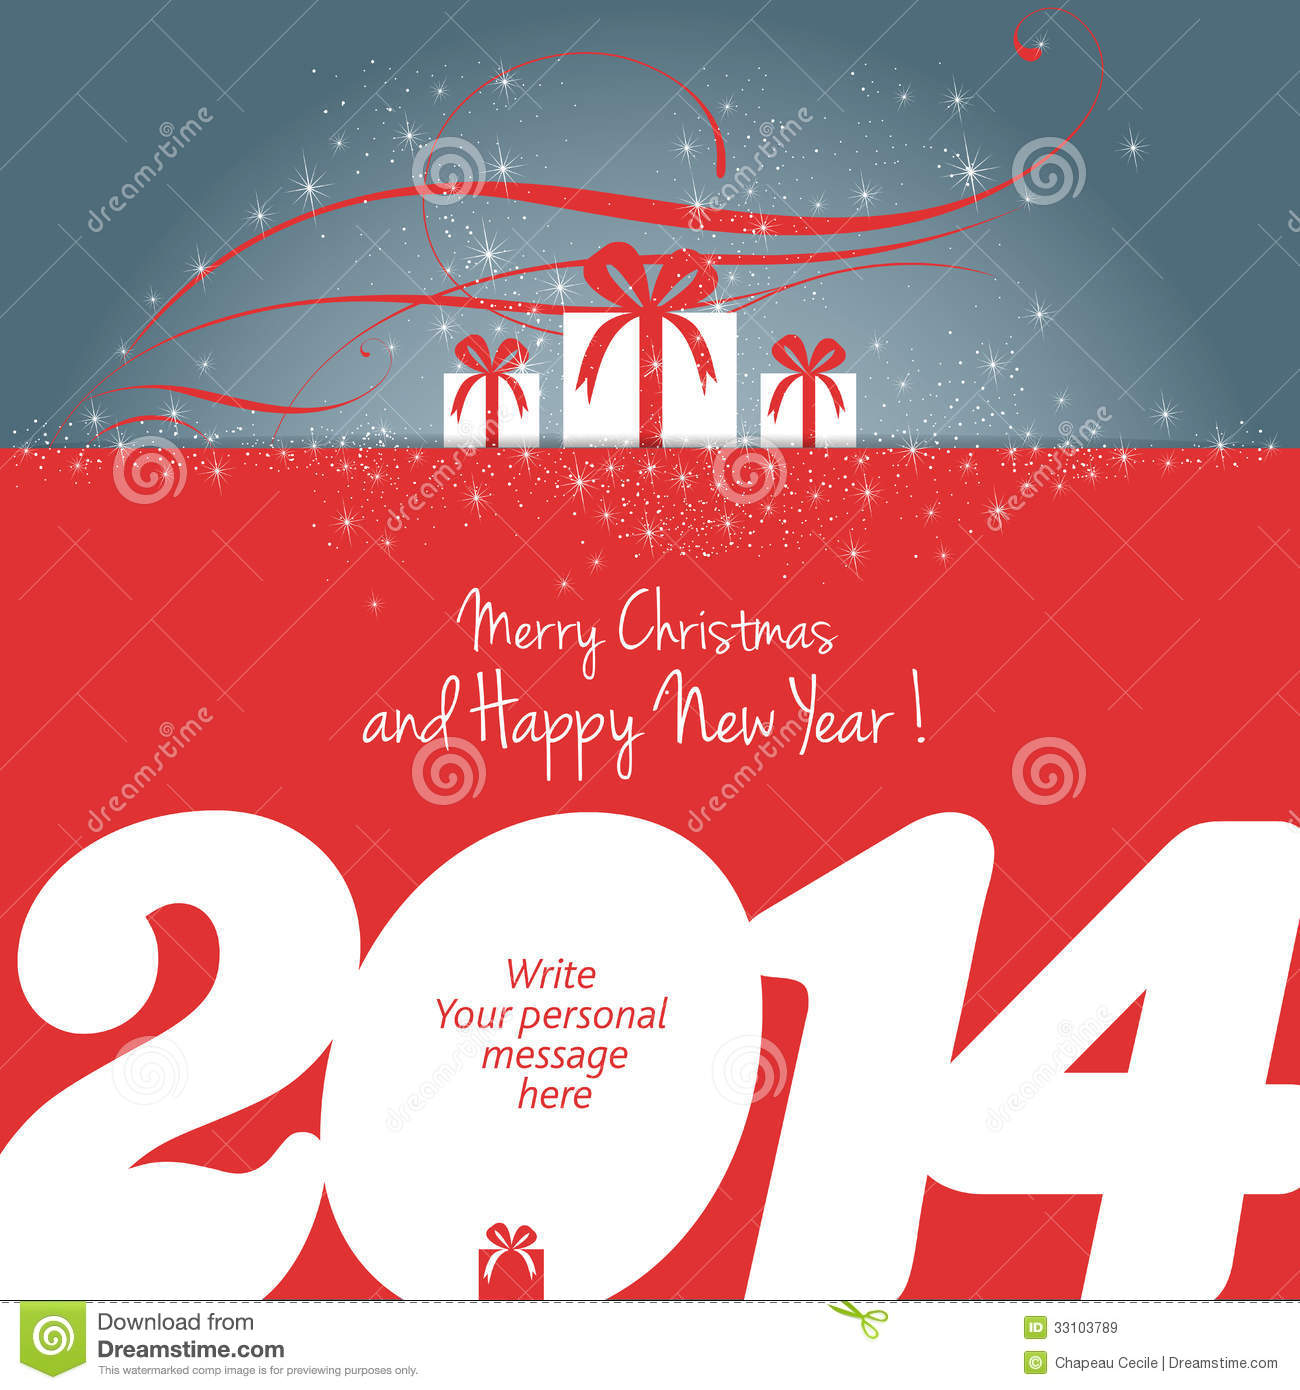 Merry Christmas And Happy New Year 2014 ! Stock Vector